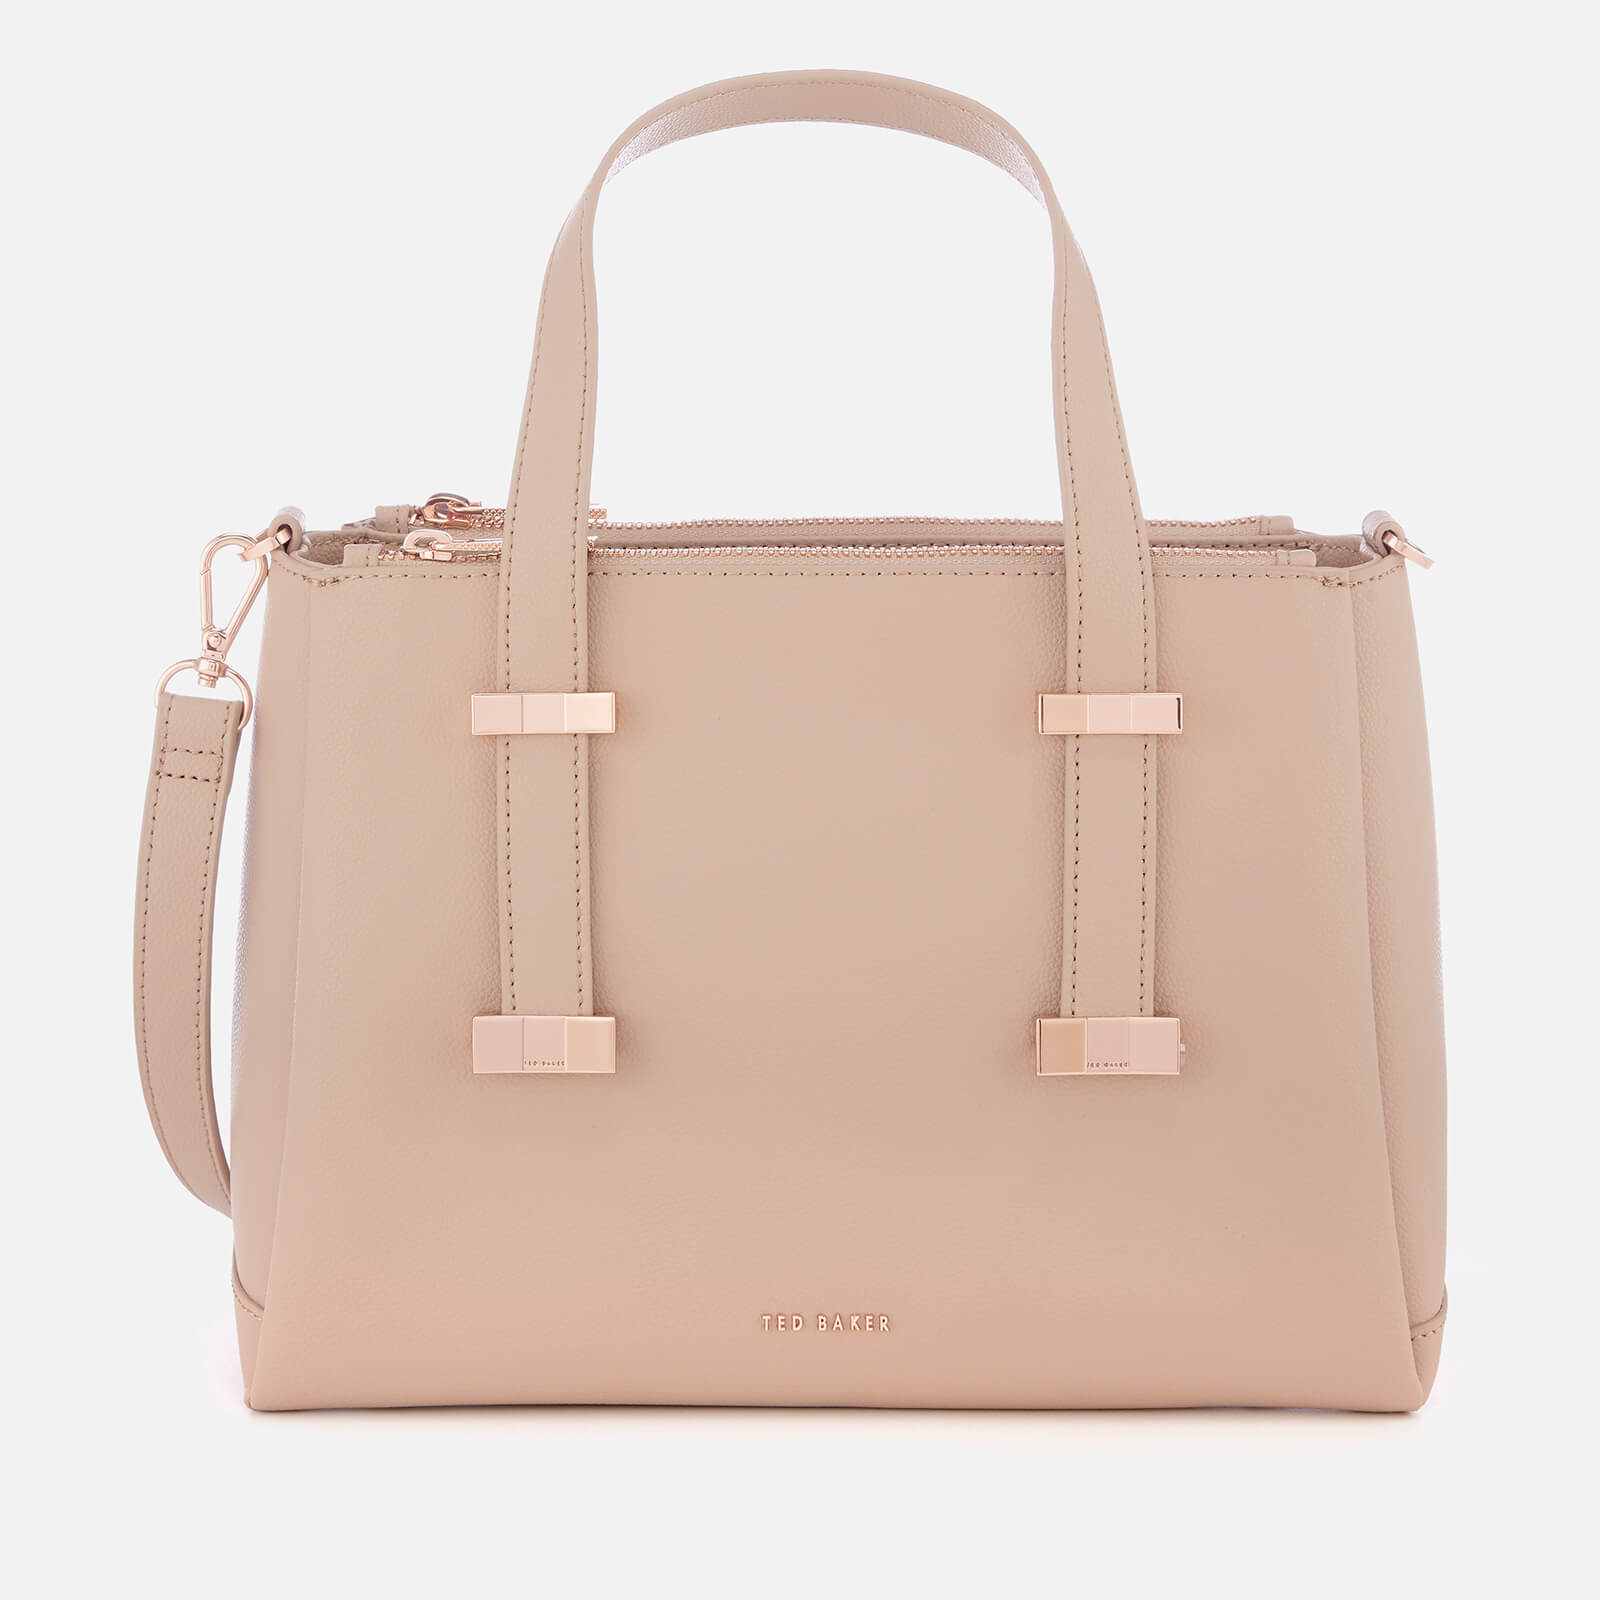 7e2cbd6d5da Ted Baker Women's Julieet Bow Adjustable Handle Small Tote Bag - Taupe